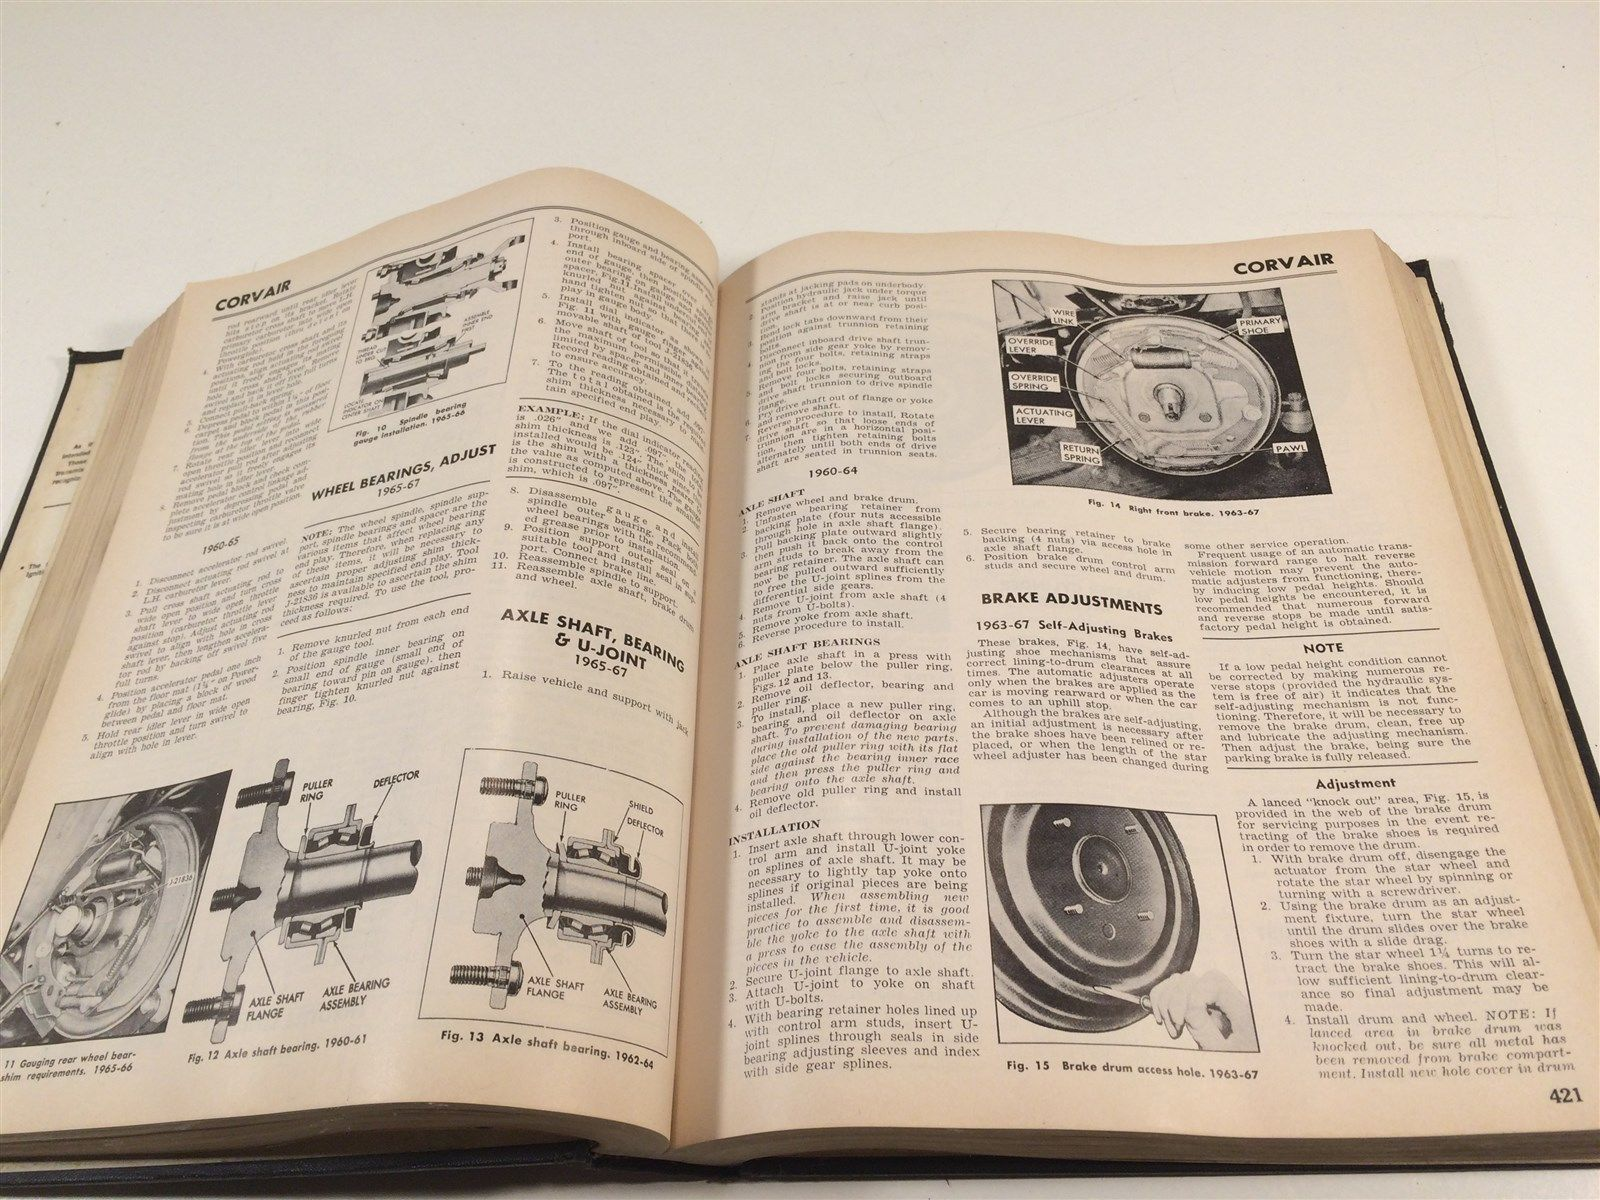 1967 Motor's Quick Service Manual 3rd Edition Rambler Comet Cougar Corvair Ford